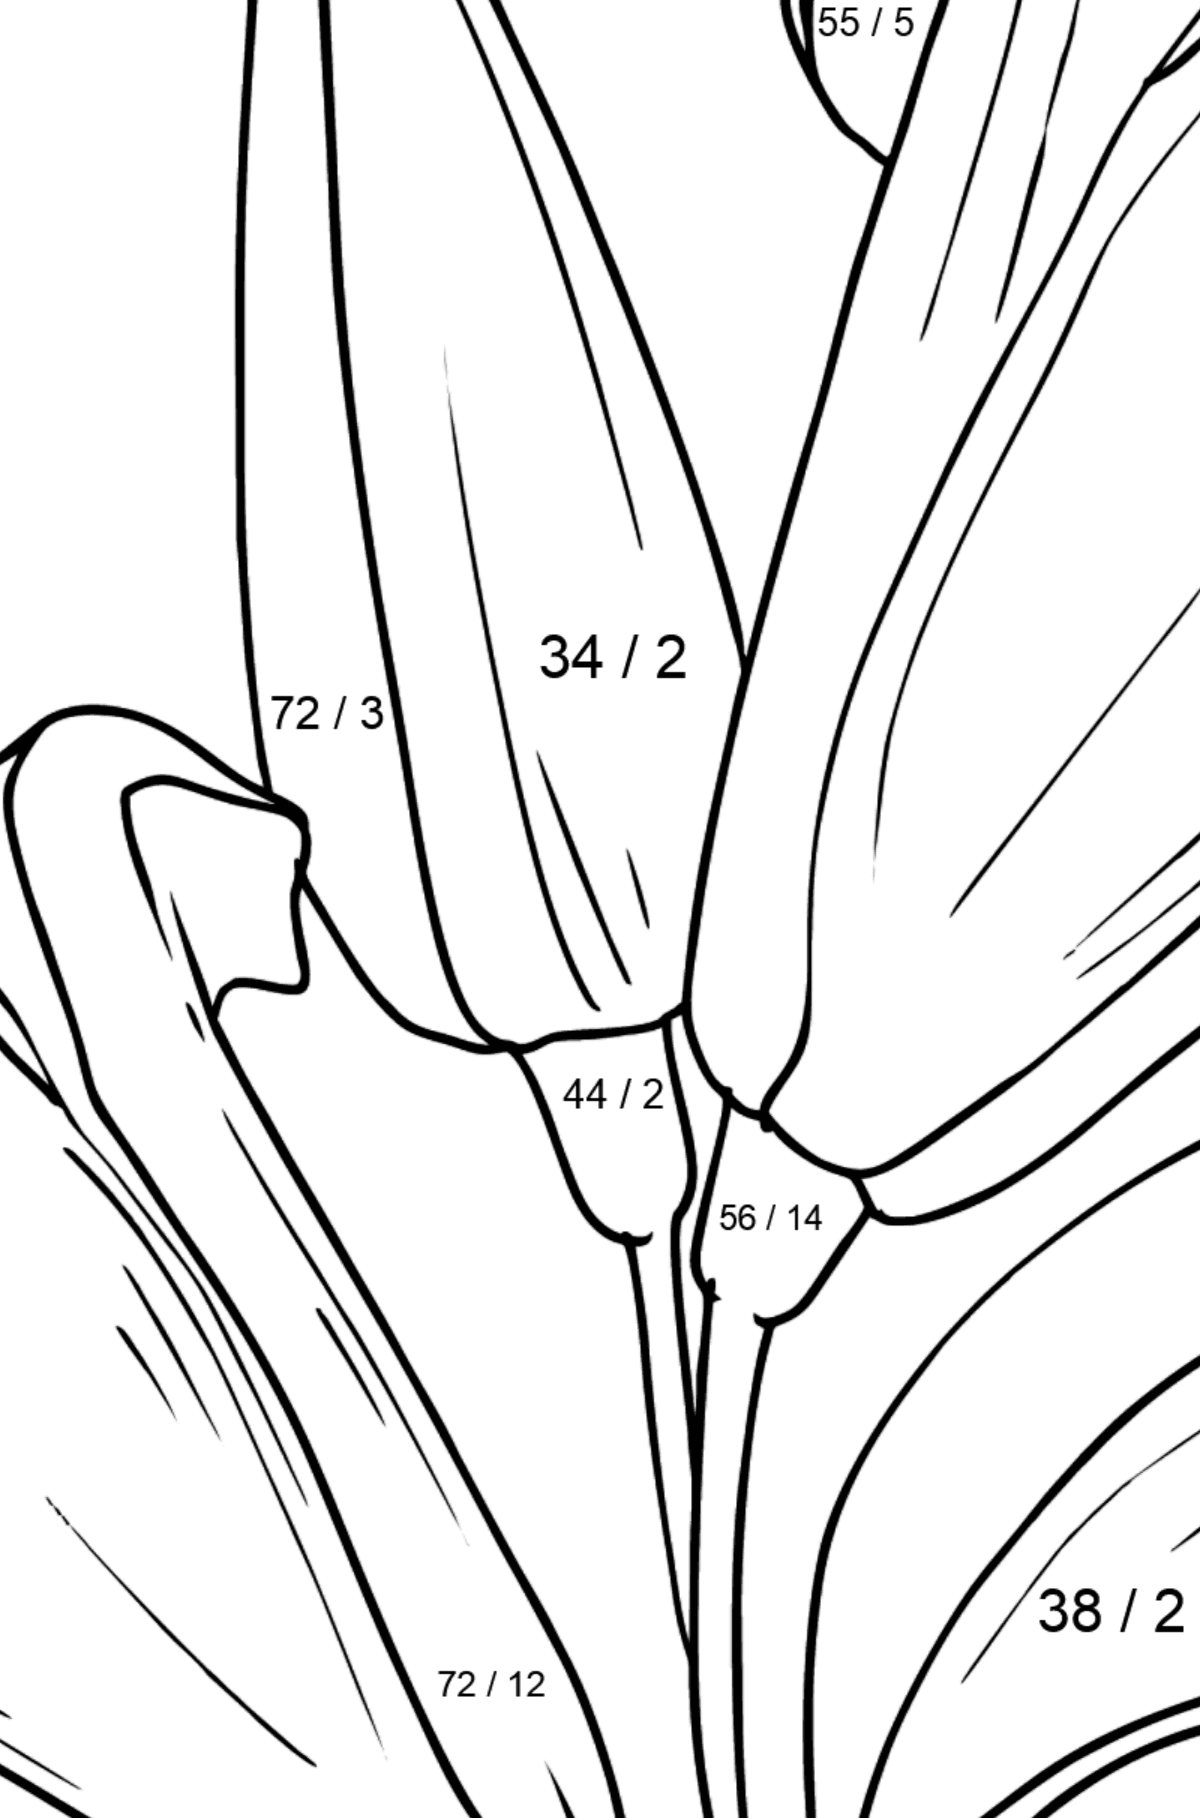 Flower Coloring Page - Lilies - Math Coloring - Division for Kids